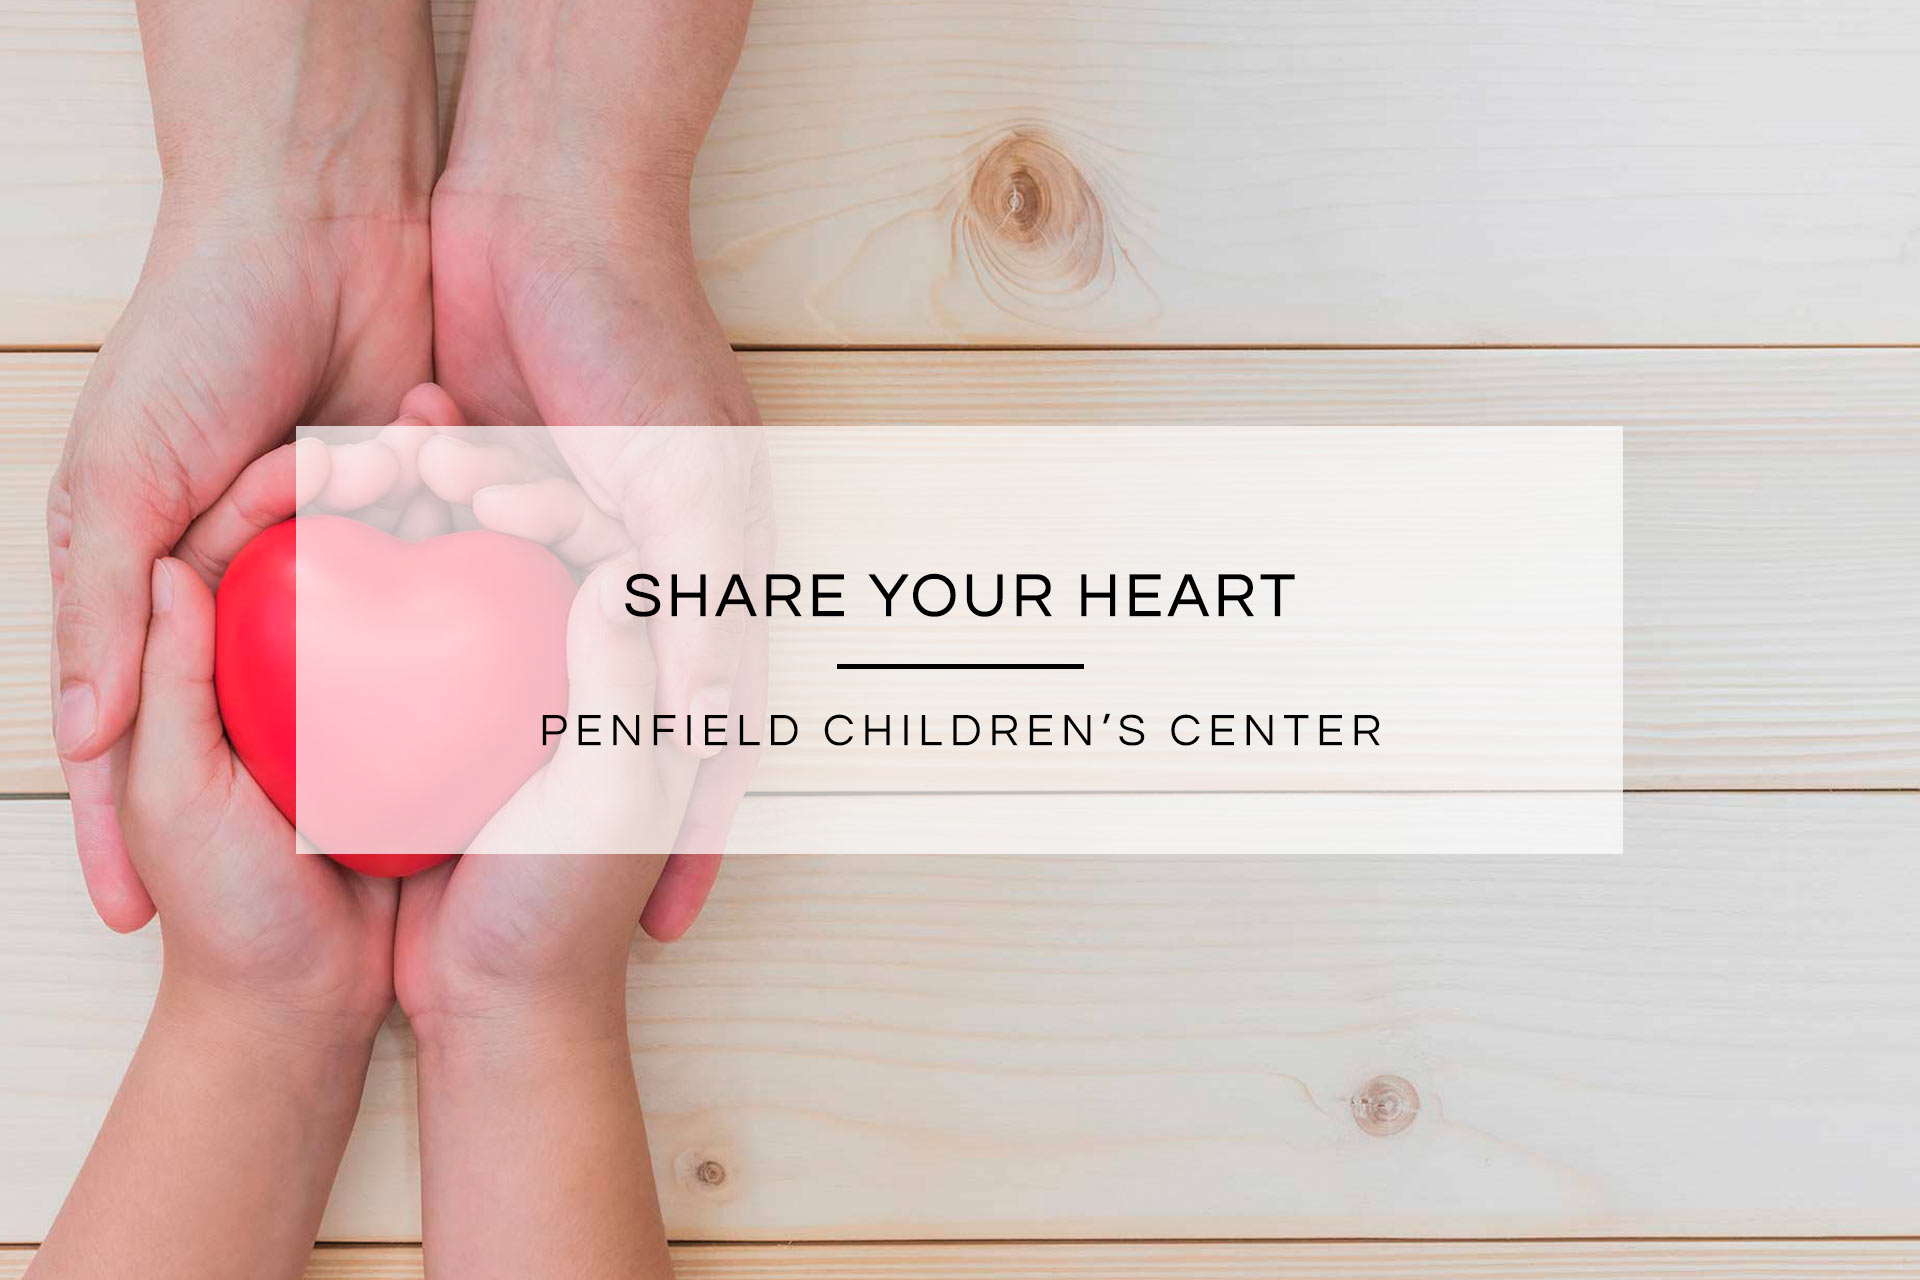 Share-Your-Heart